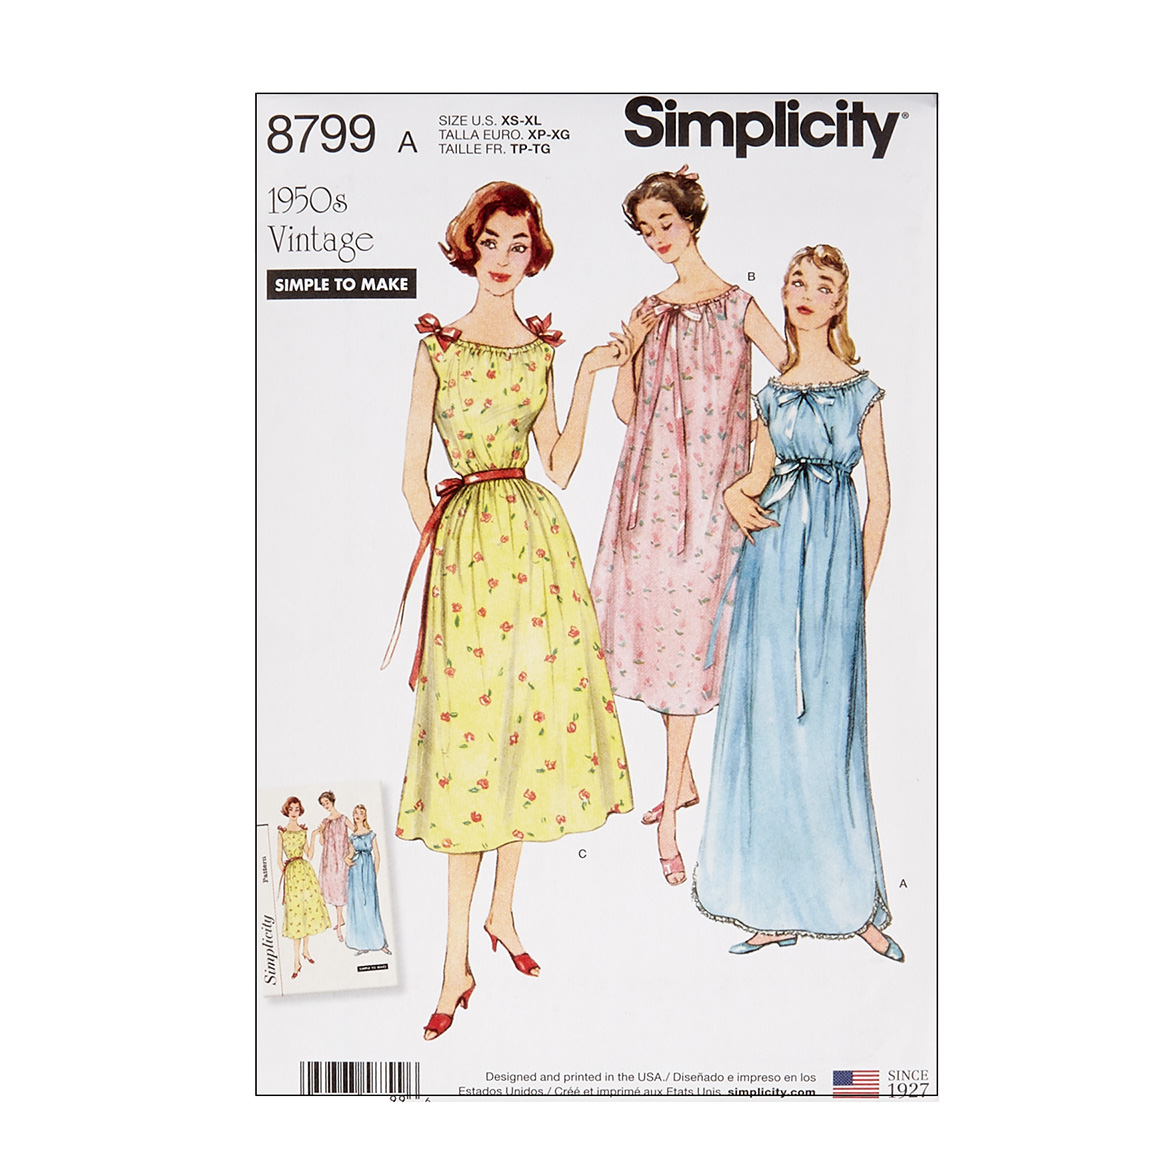 1950s Sewing Patterns | Swing and Wiggle Dresses, Skirts Simplicity 8799 Misses Vintage Nightgowns A Sizes XS-S-M-L-XL $13.77 AT vintagedancer.com